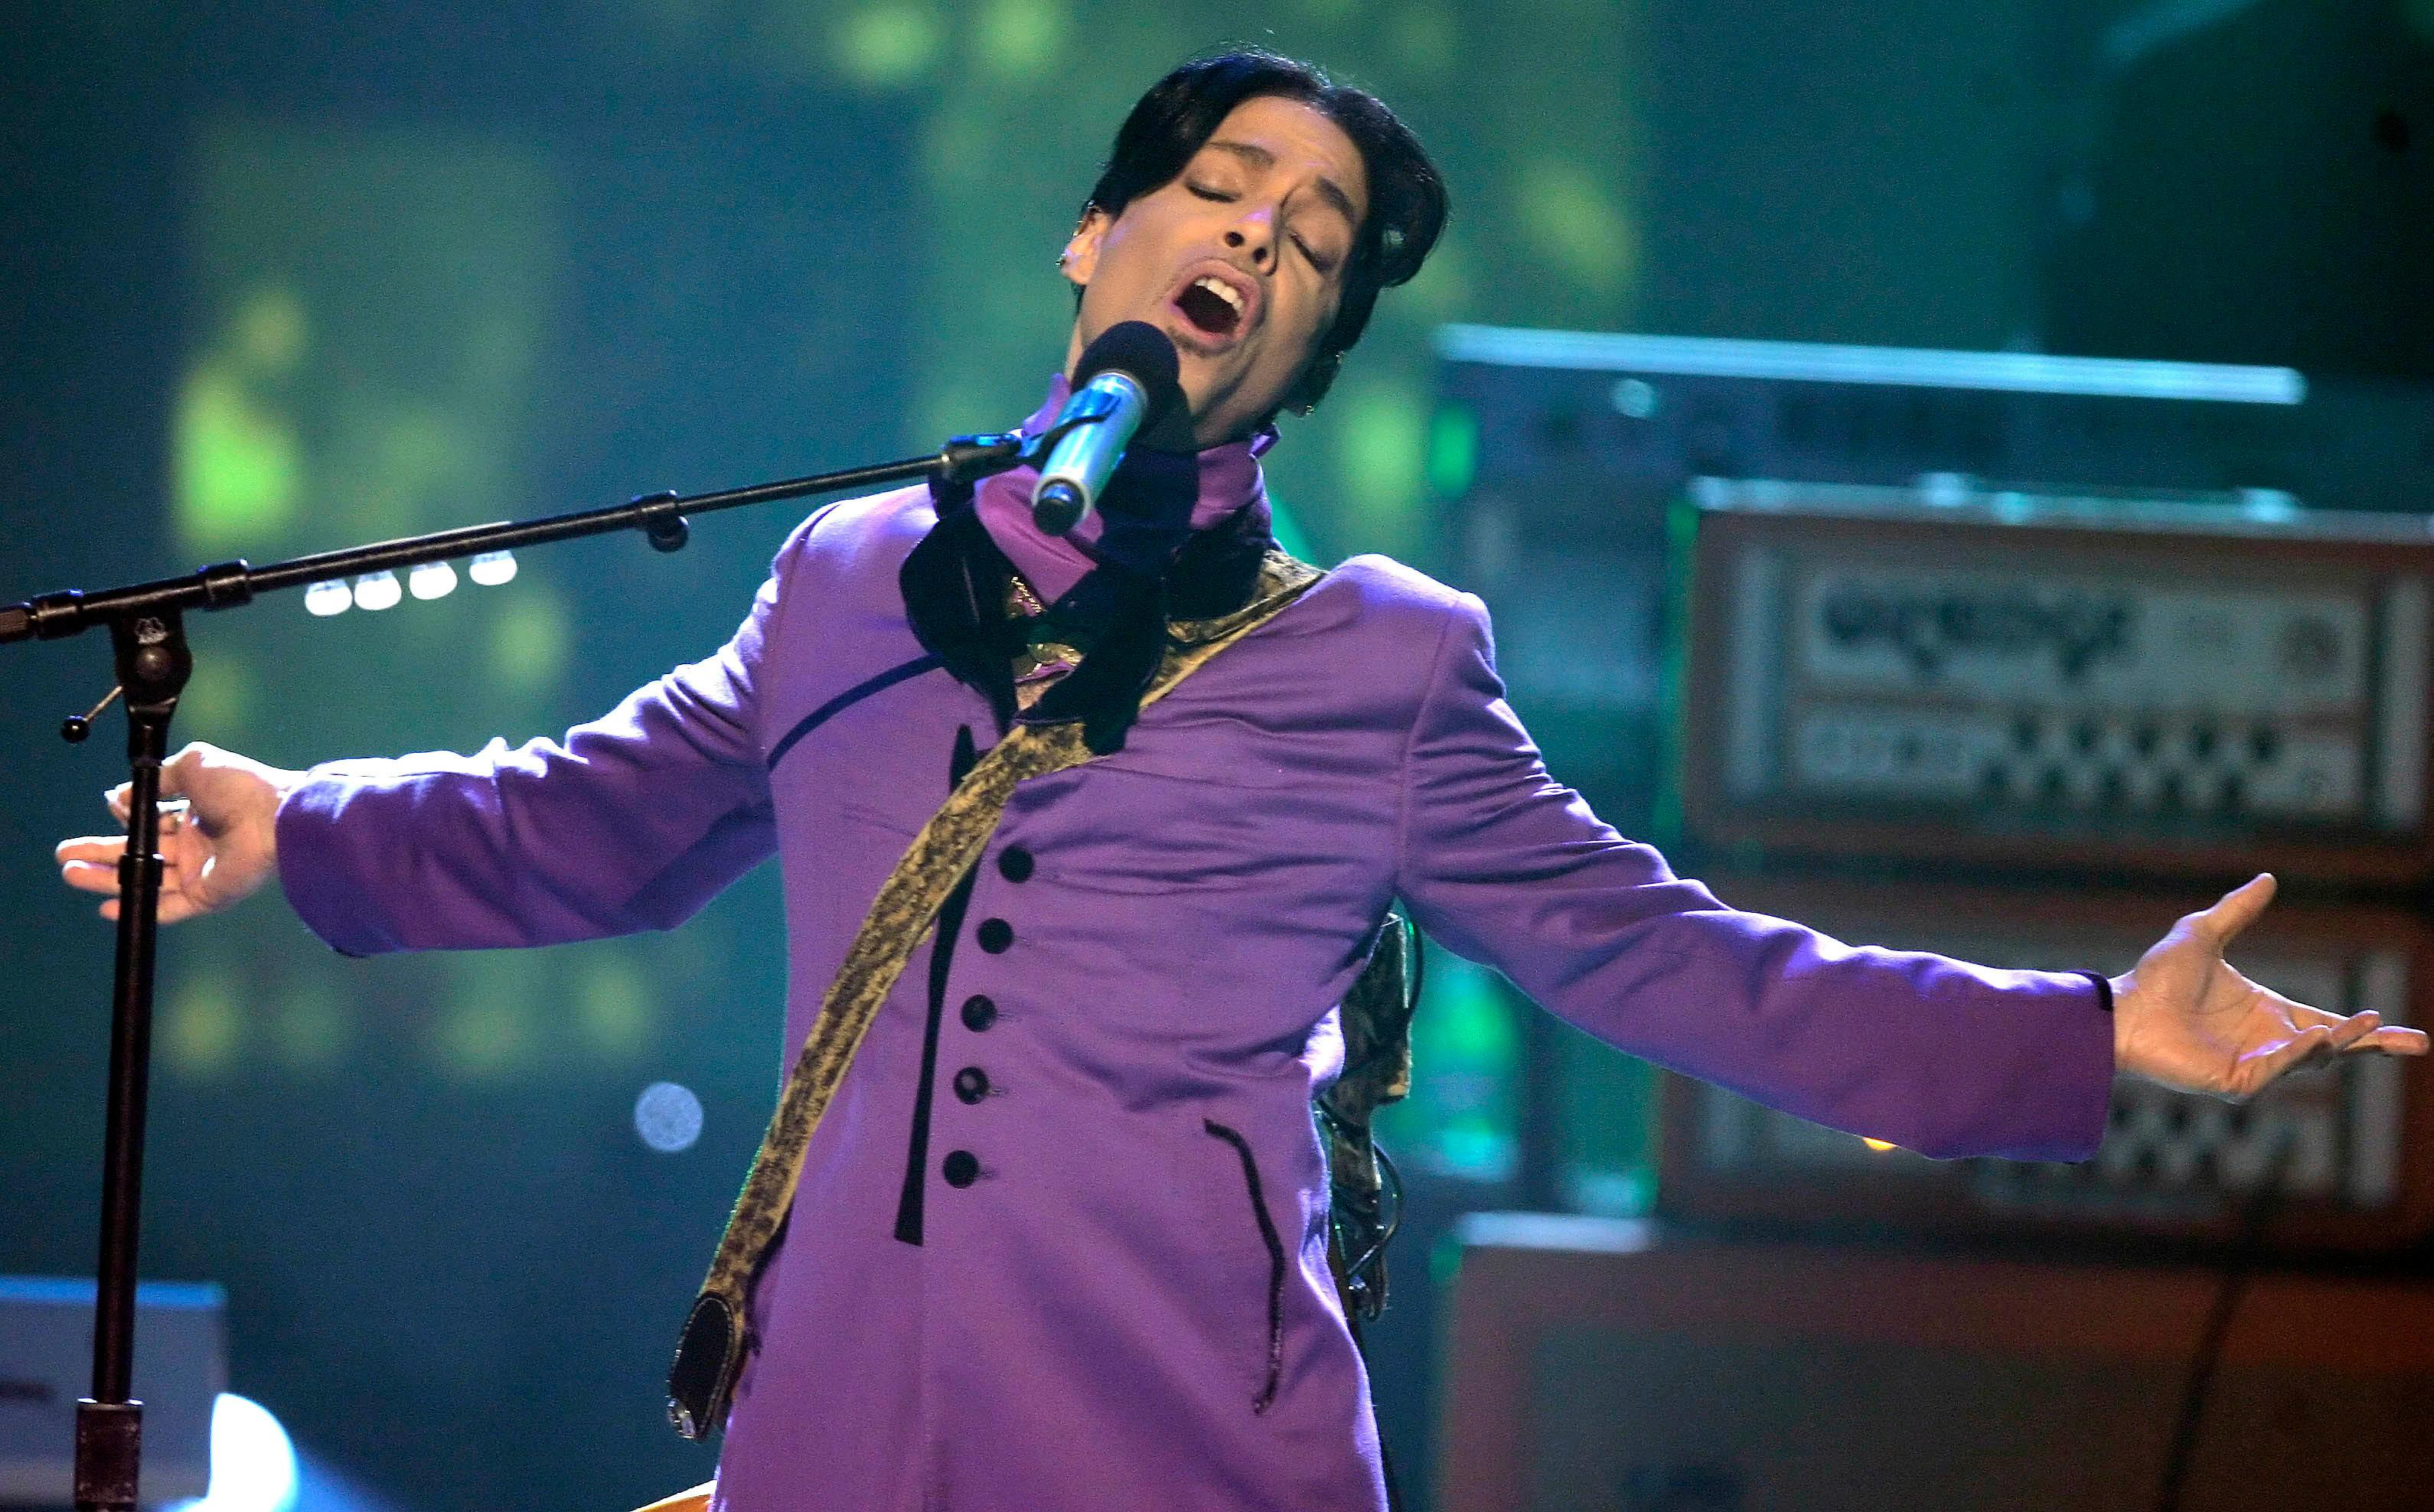 "File-This June 27, 2006, file photo shows Prince performing during the 6th annual BET Awards in Los Angeles.  Prince didn't have an orange crush, purple was his favorite color, according to his half-sister. Sharon Nelson says in a statement Thursday, Aug. 31, 2017, to The Associated Press that ""contrary to what has been said, purple was and is Prince's color."" Tyka Nelson, Prince's only full sibling, told the London Evening Standard in a story published Aug. 21 that though people associate purple with the singer, his favorite color was orange. (AP Photo/Chris Carlson, File)"